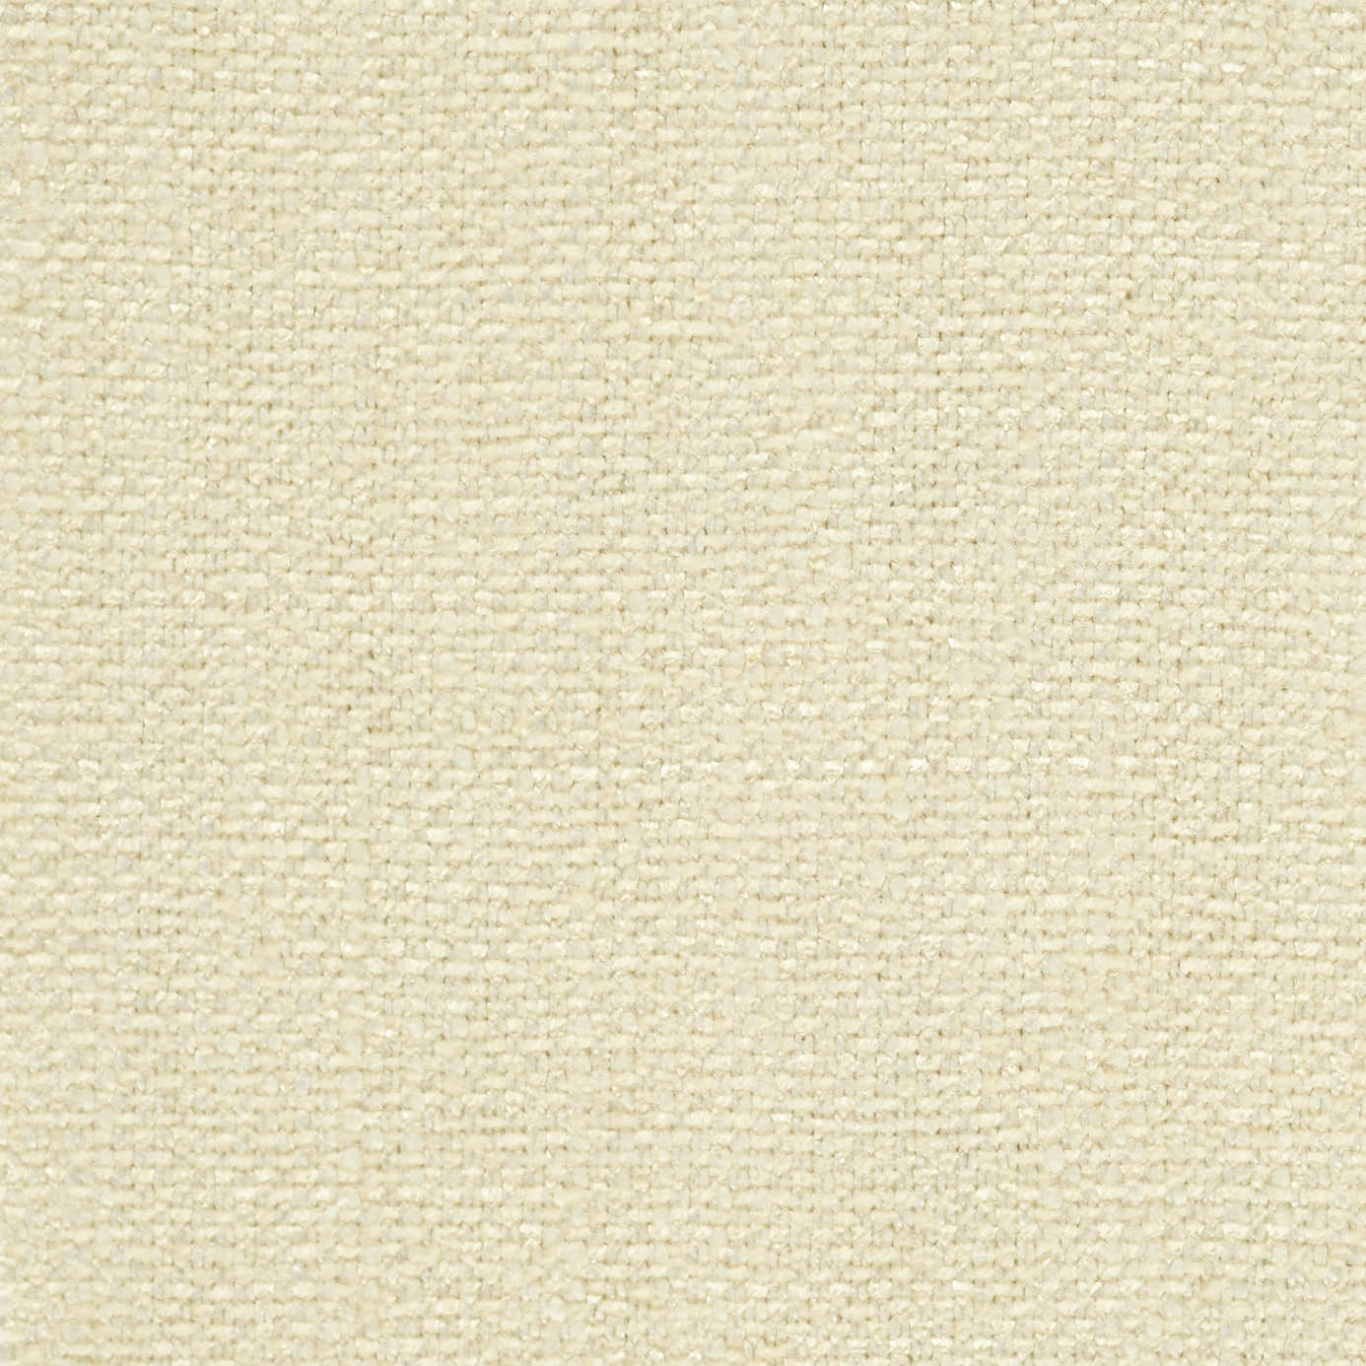 Image of Harlequin Molecule Sand Fabric 440005